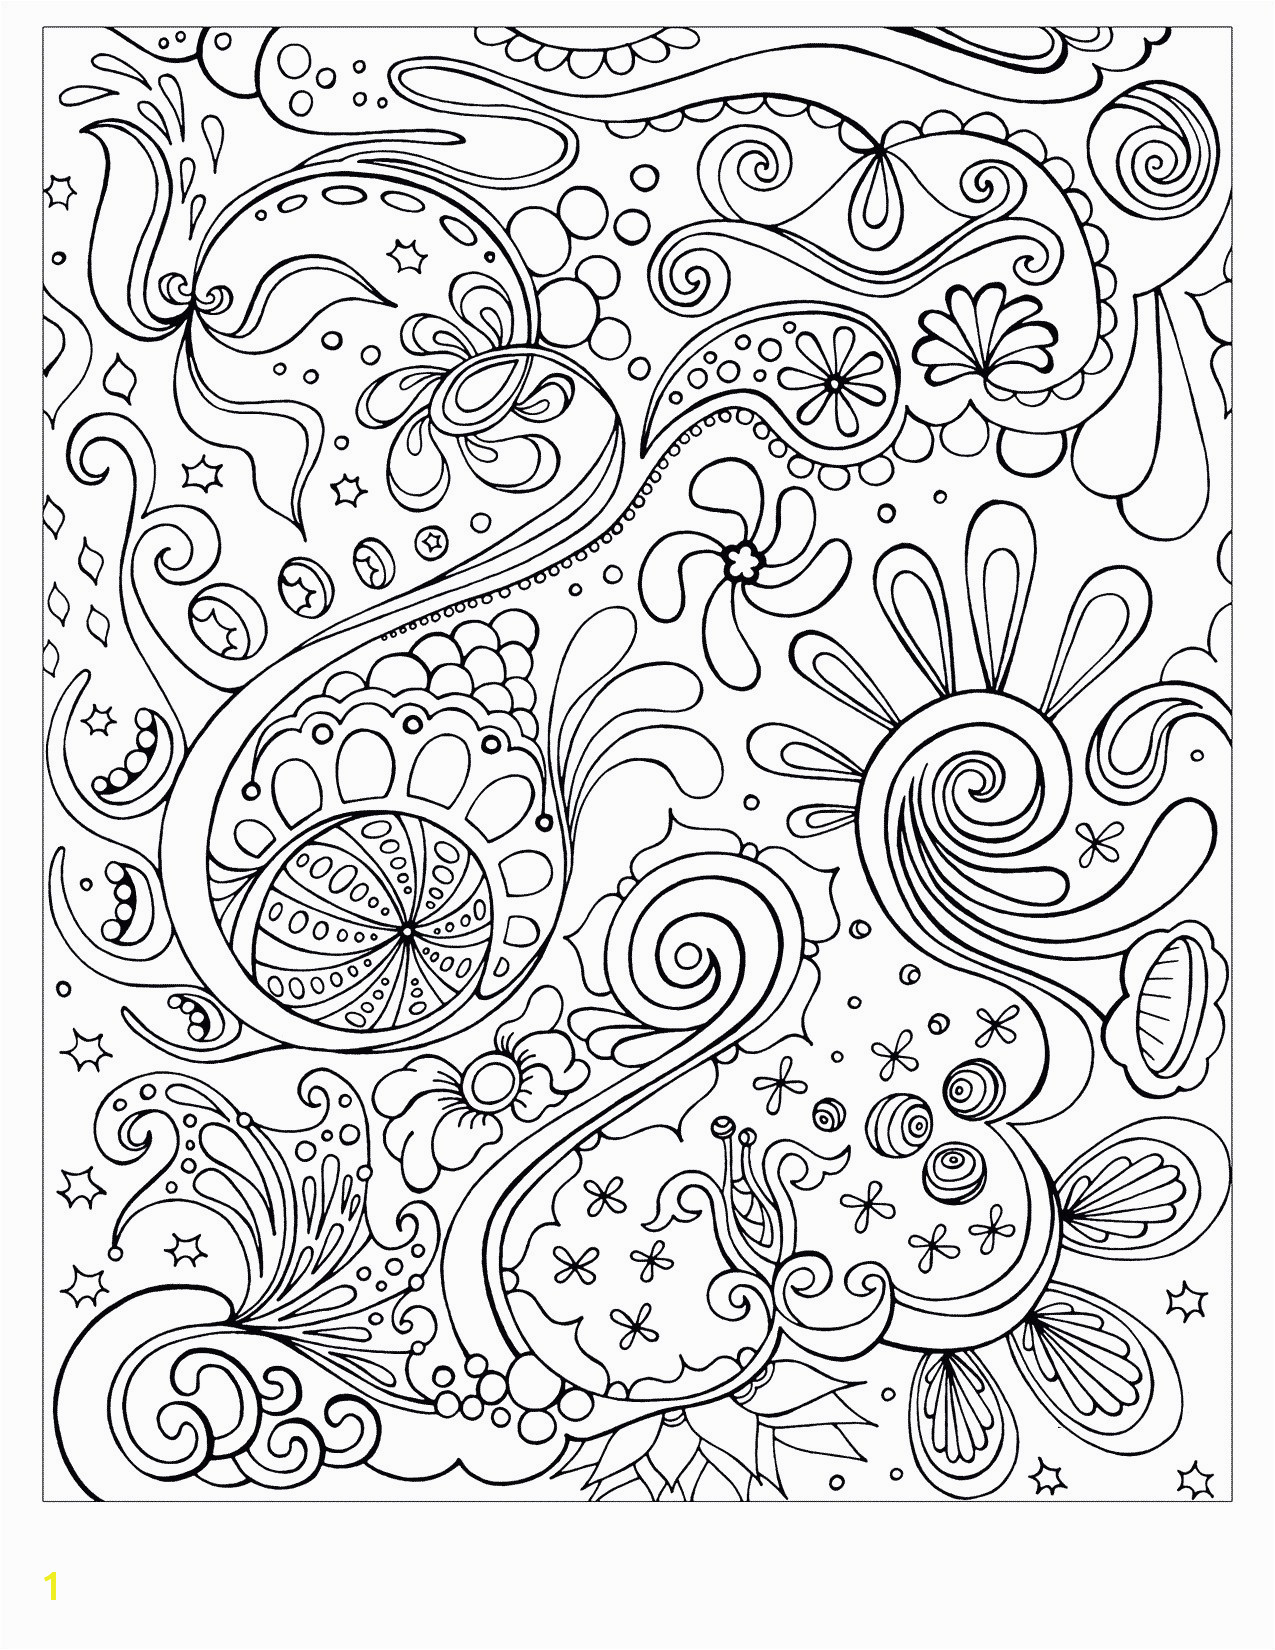 Bible Coloring Pages for Kids Inspirational Bible Coloring Pages for Kids Luxury Coloring Printables 0d –